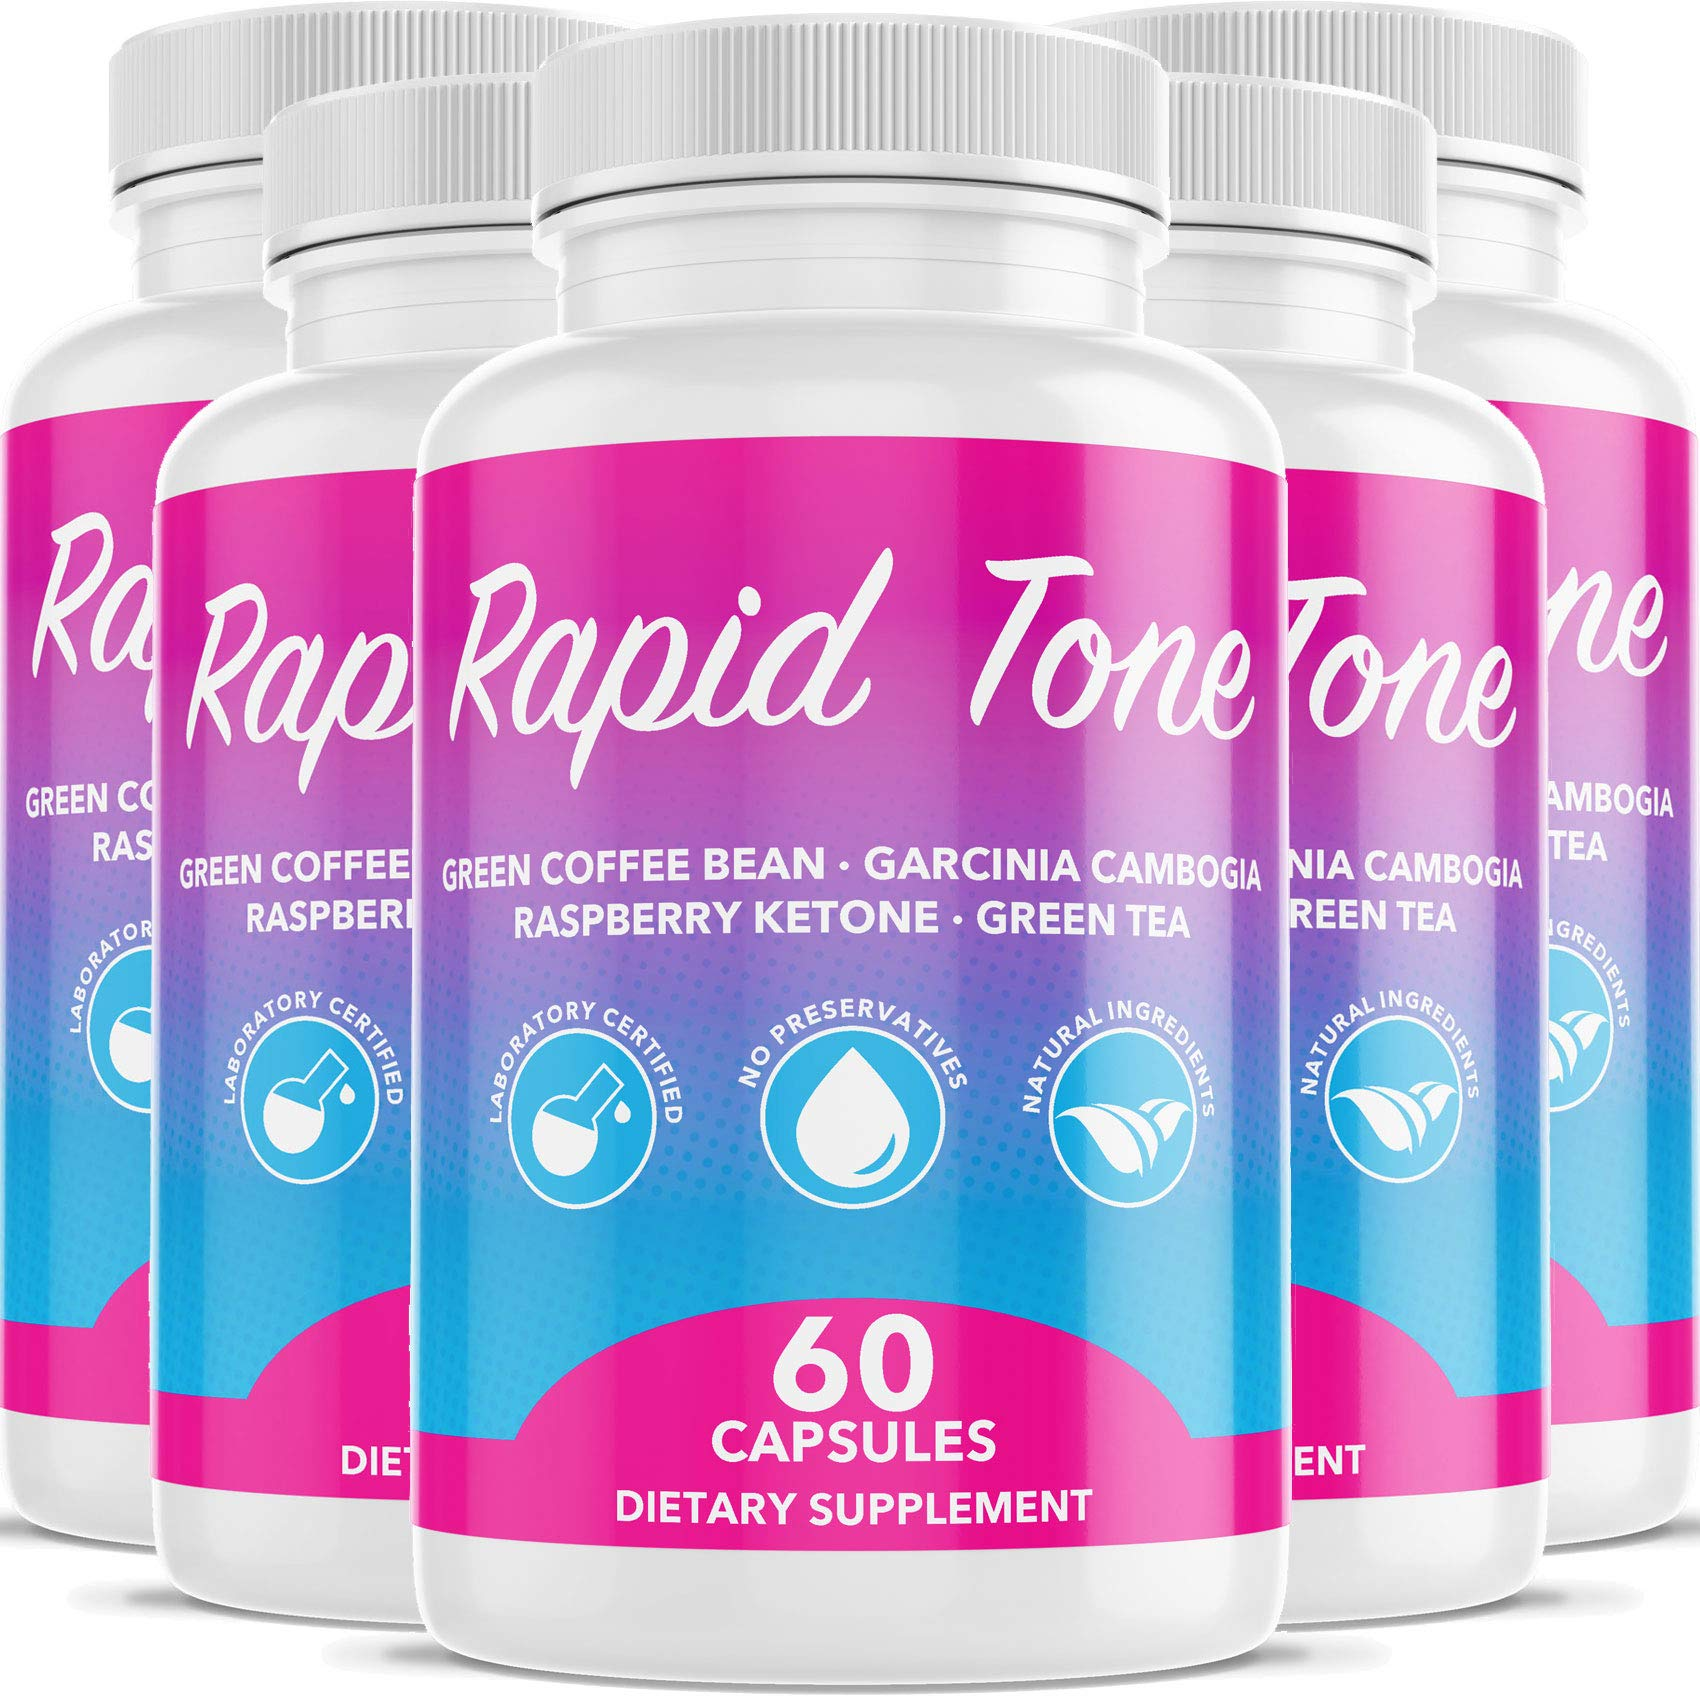 Rapid Tone Weight Loss Pills Supplement - Burn Fat Quicker - Carb Blocker, Appetite Suppressant, Fat Burner - Natural Thermogenic Extreme Diet Fast WeightLoss for Women Men (5 Month Supply)